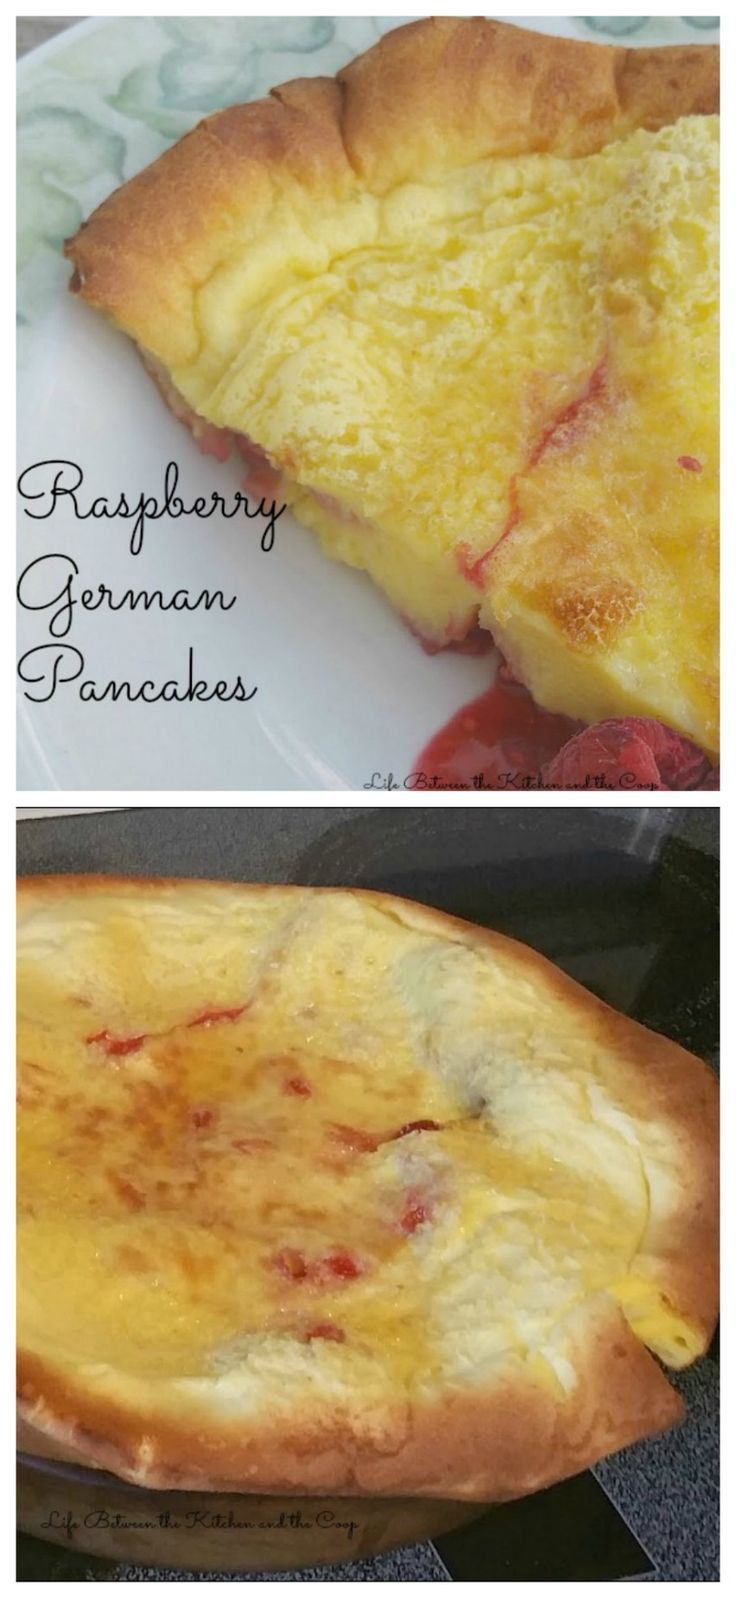 I am about to introduce you to one of my husbands delicious breakfast creations.  Raspberry German Pancakes.  They are so yummy!  Awesome german pancakes with a hint of raspberry!  CLICK THROUGH TO THE POST!  You do NOT want to miss this recipe!  Get the